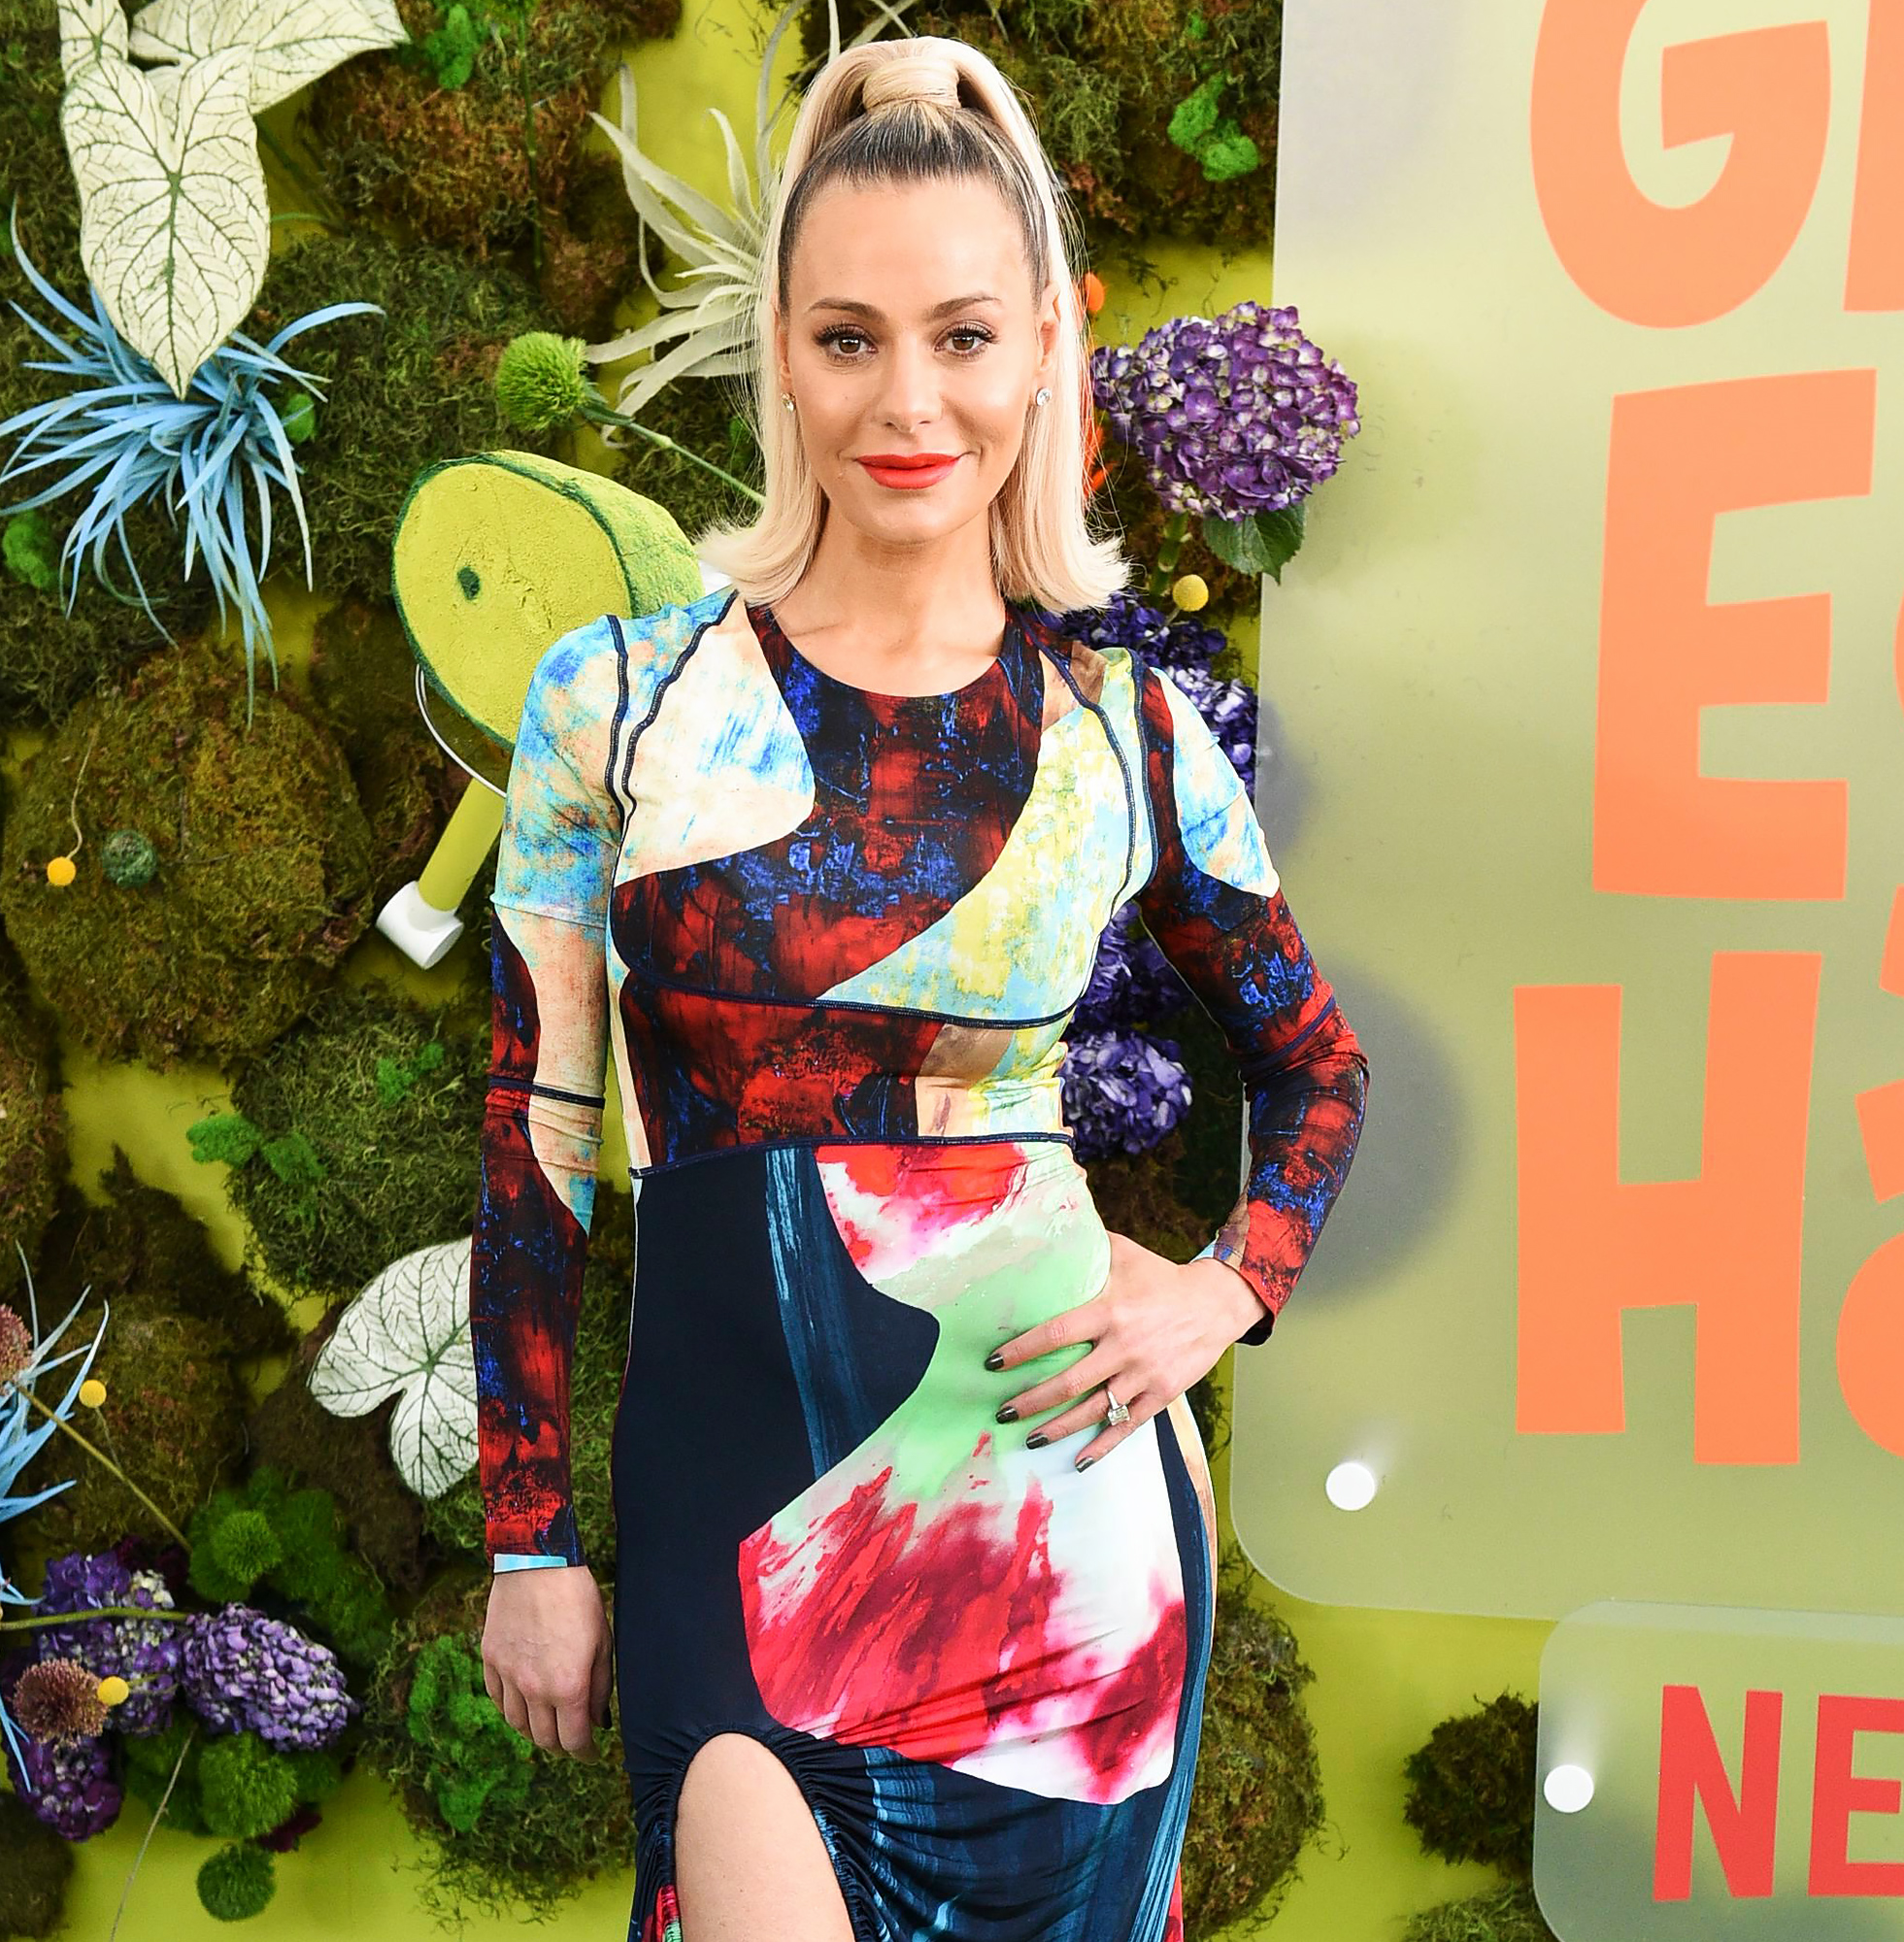 Dorit Kemsley Addresses Legal Woes